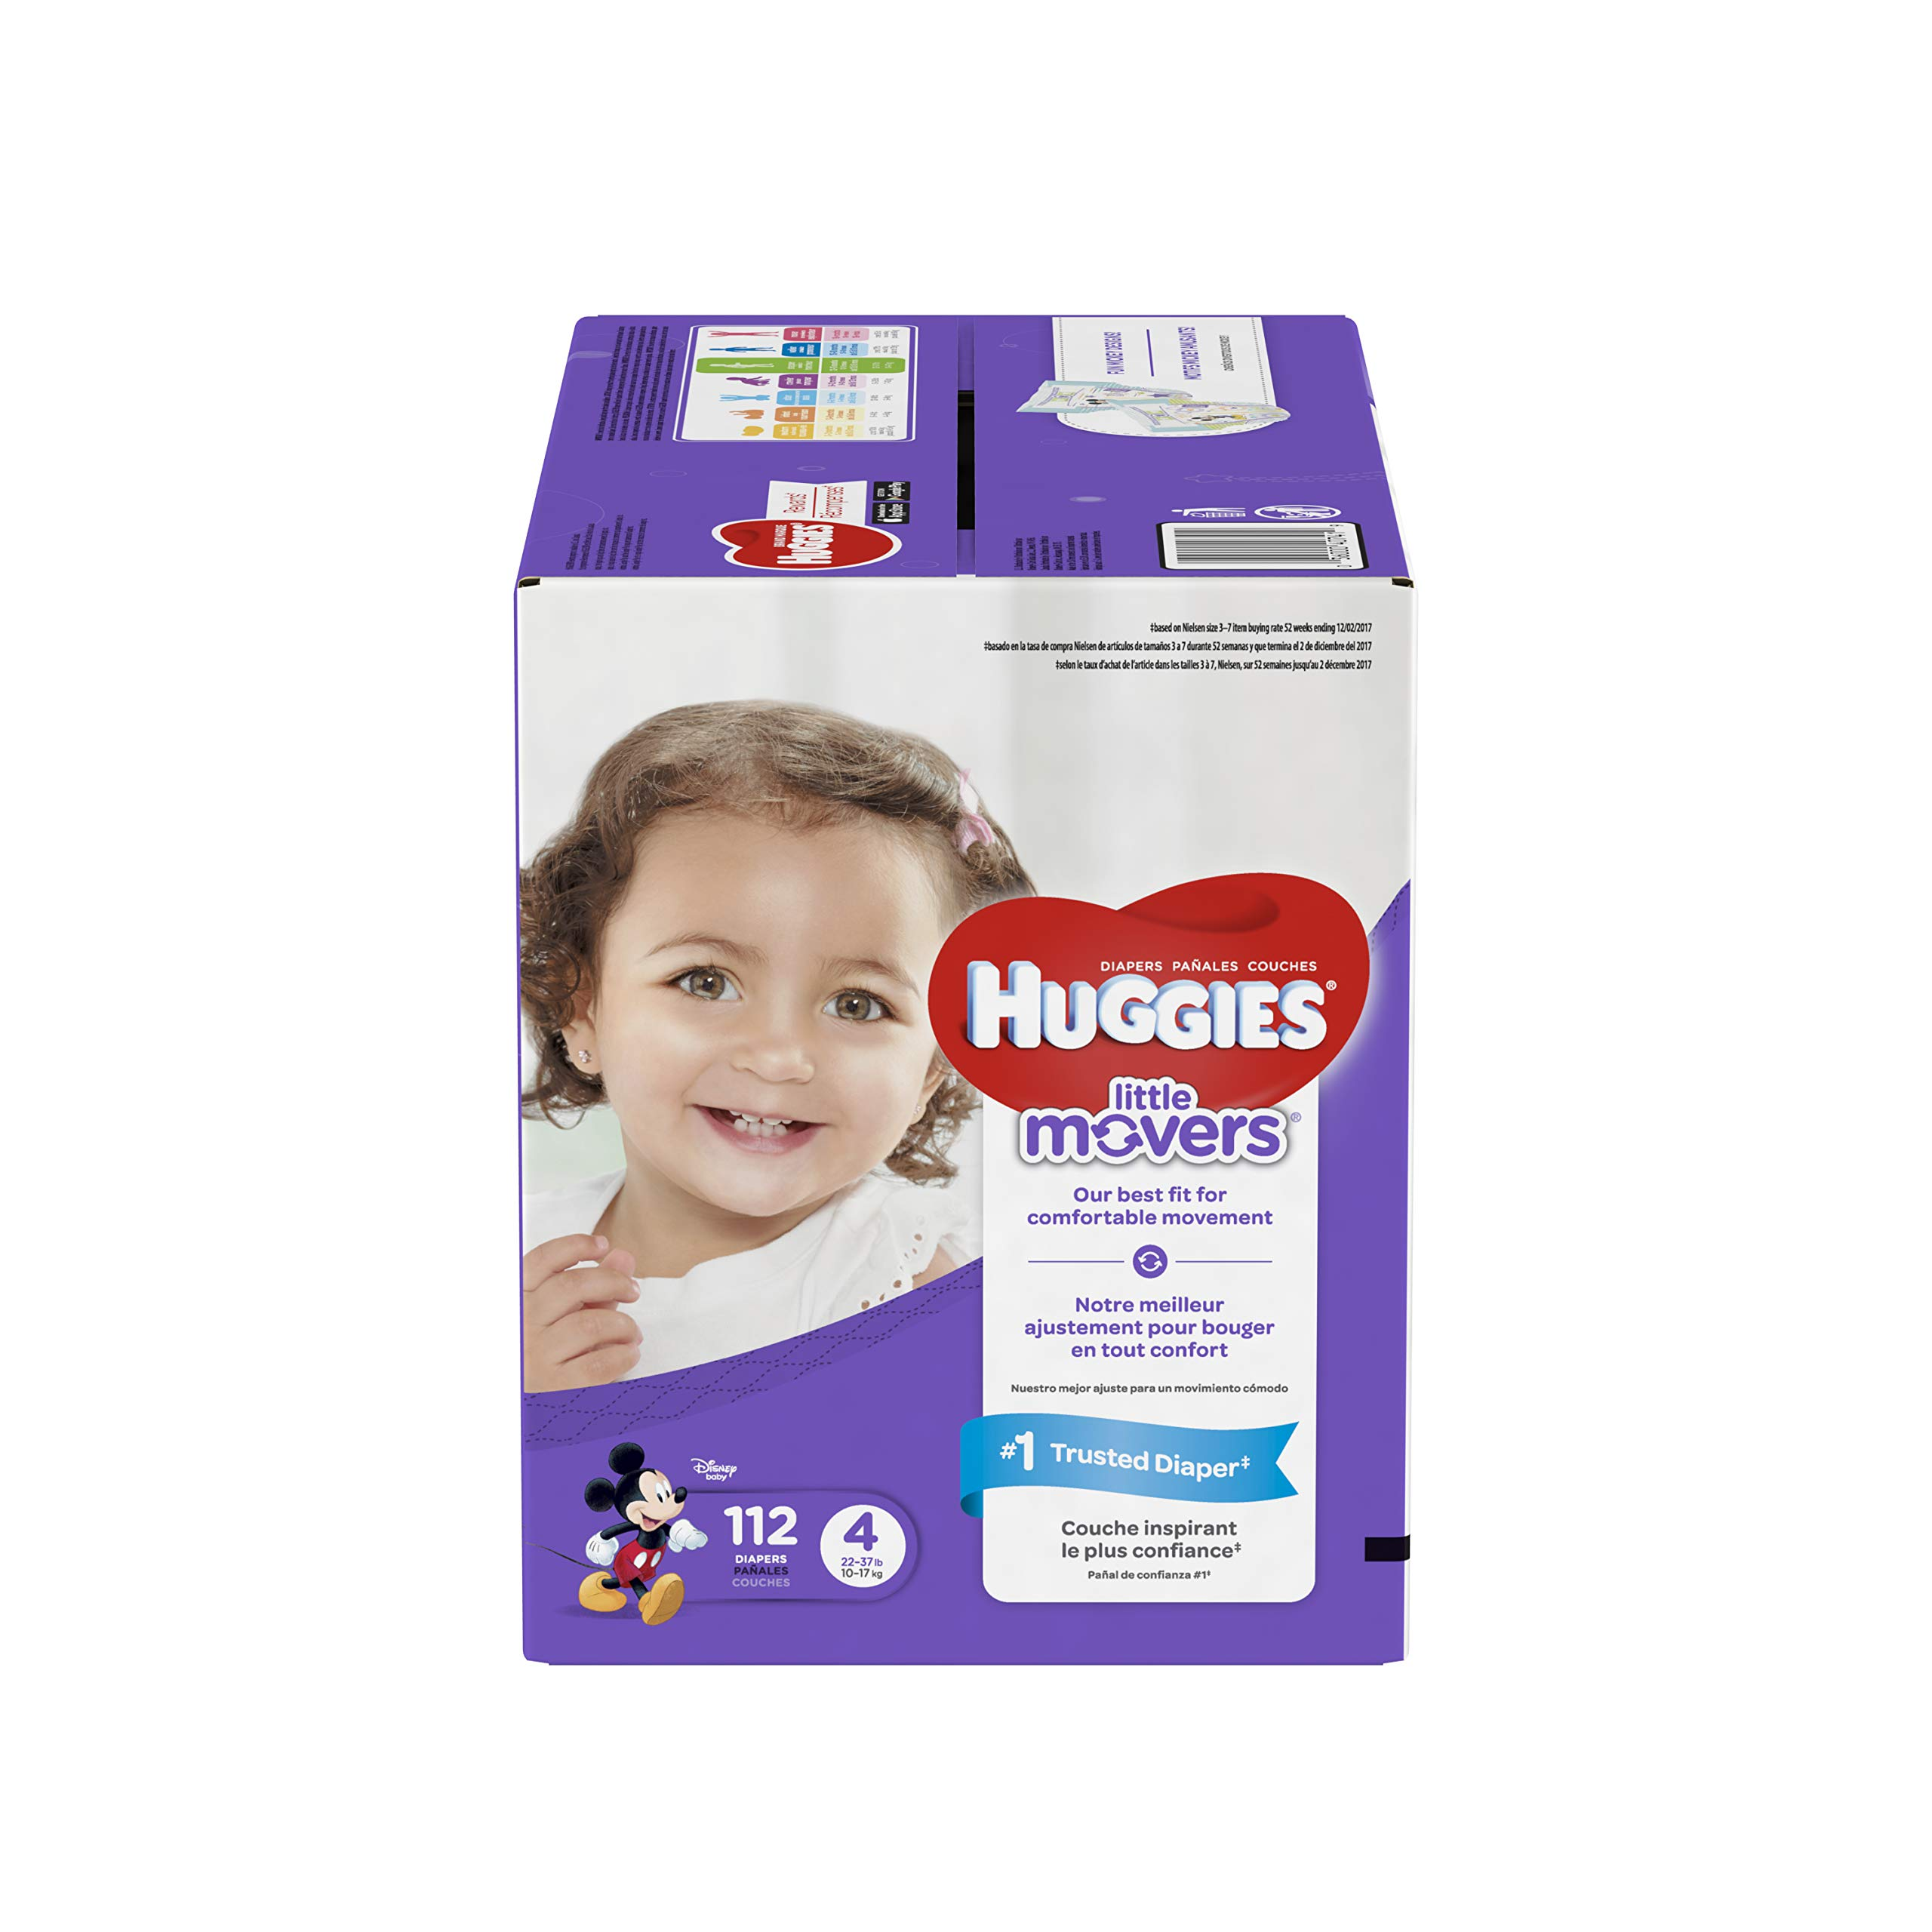 HUGGIES LITTLE MOVERS Diapers, Size 4 (22-37 lb.), 112 Ct, GIANT PACK (Packaging May Vary), Baby Diapers for Active Babies